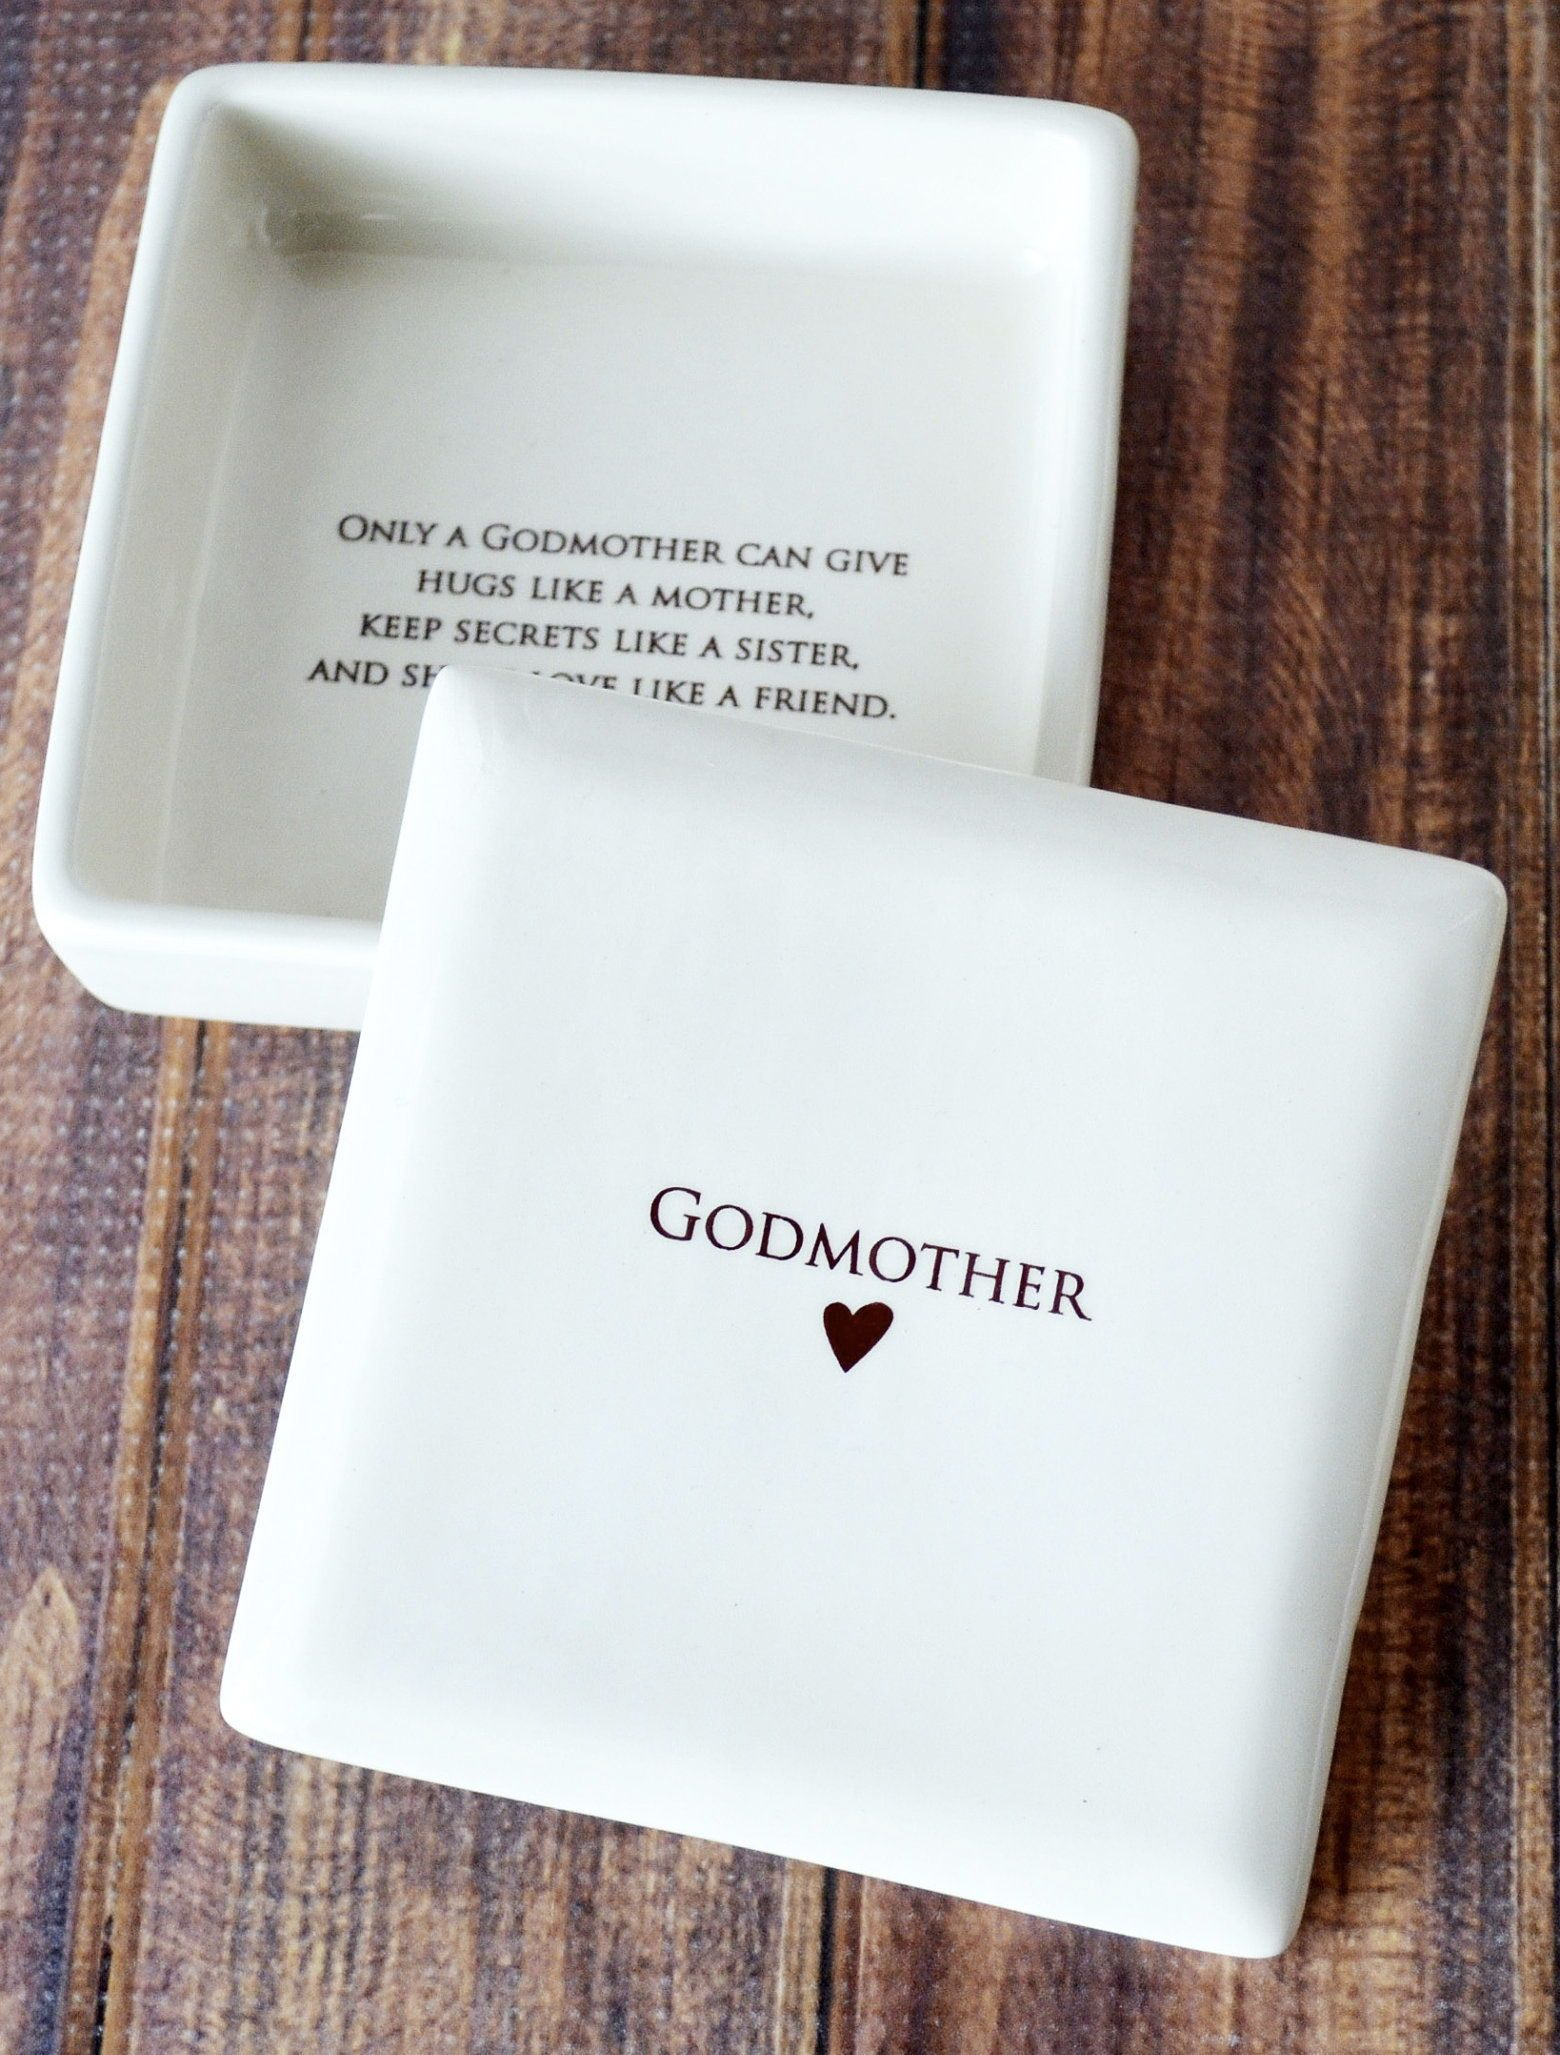 Godmother Gift Godmother Gift Idea Godmother Present